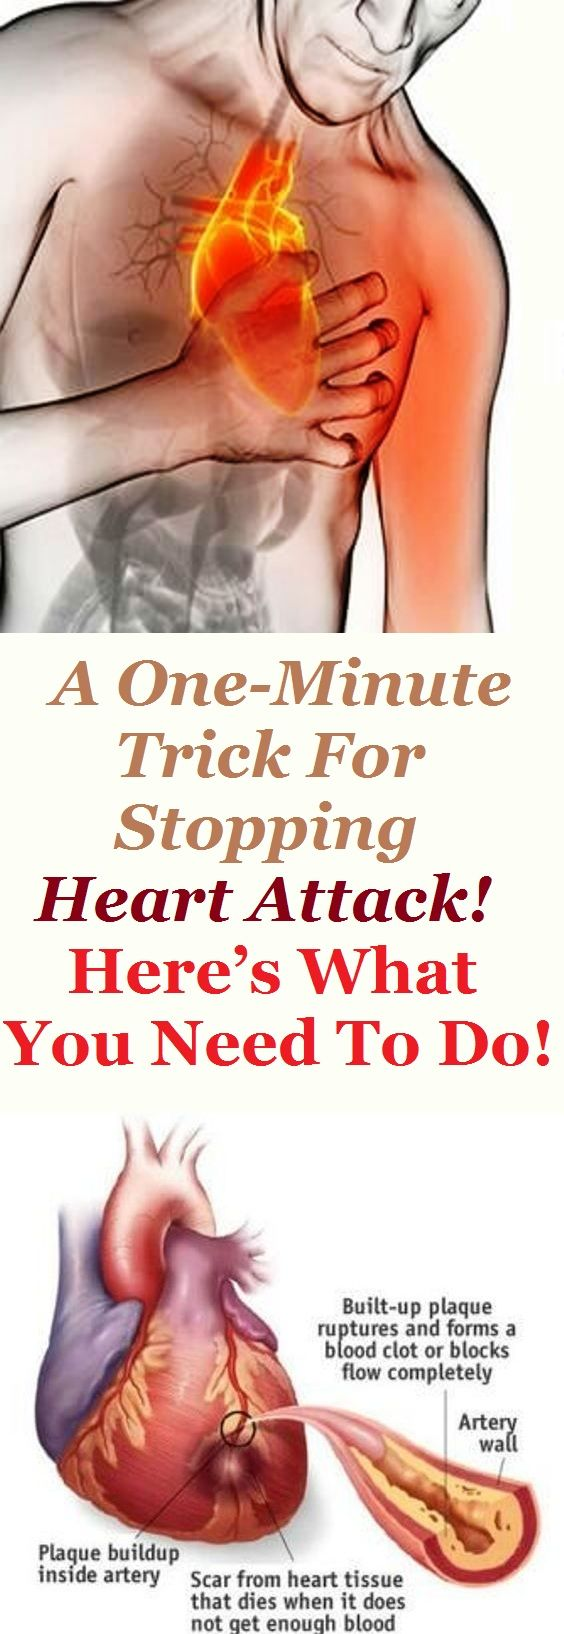 A One-Minute Trick For Stopping Heart Attack! Here's What You Need To Do!